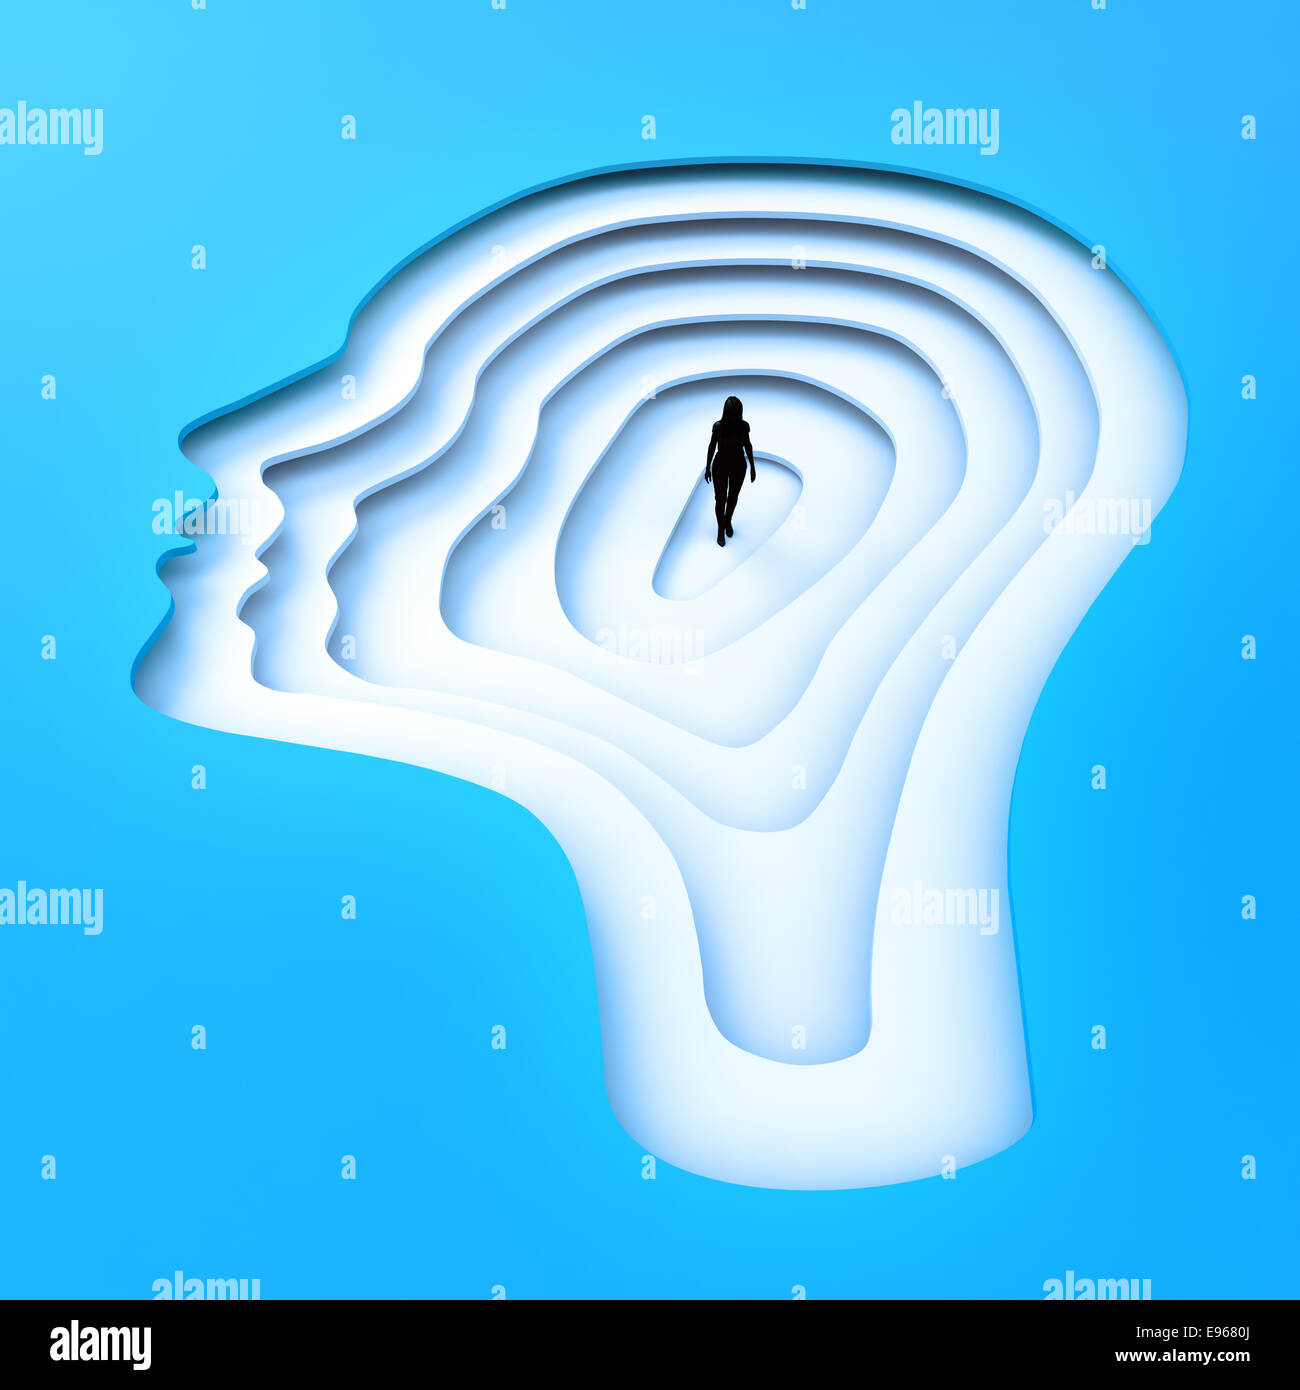 Tiny person standing inside a female head silhouette. Stock Photo